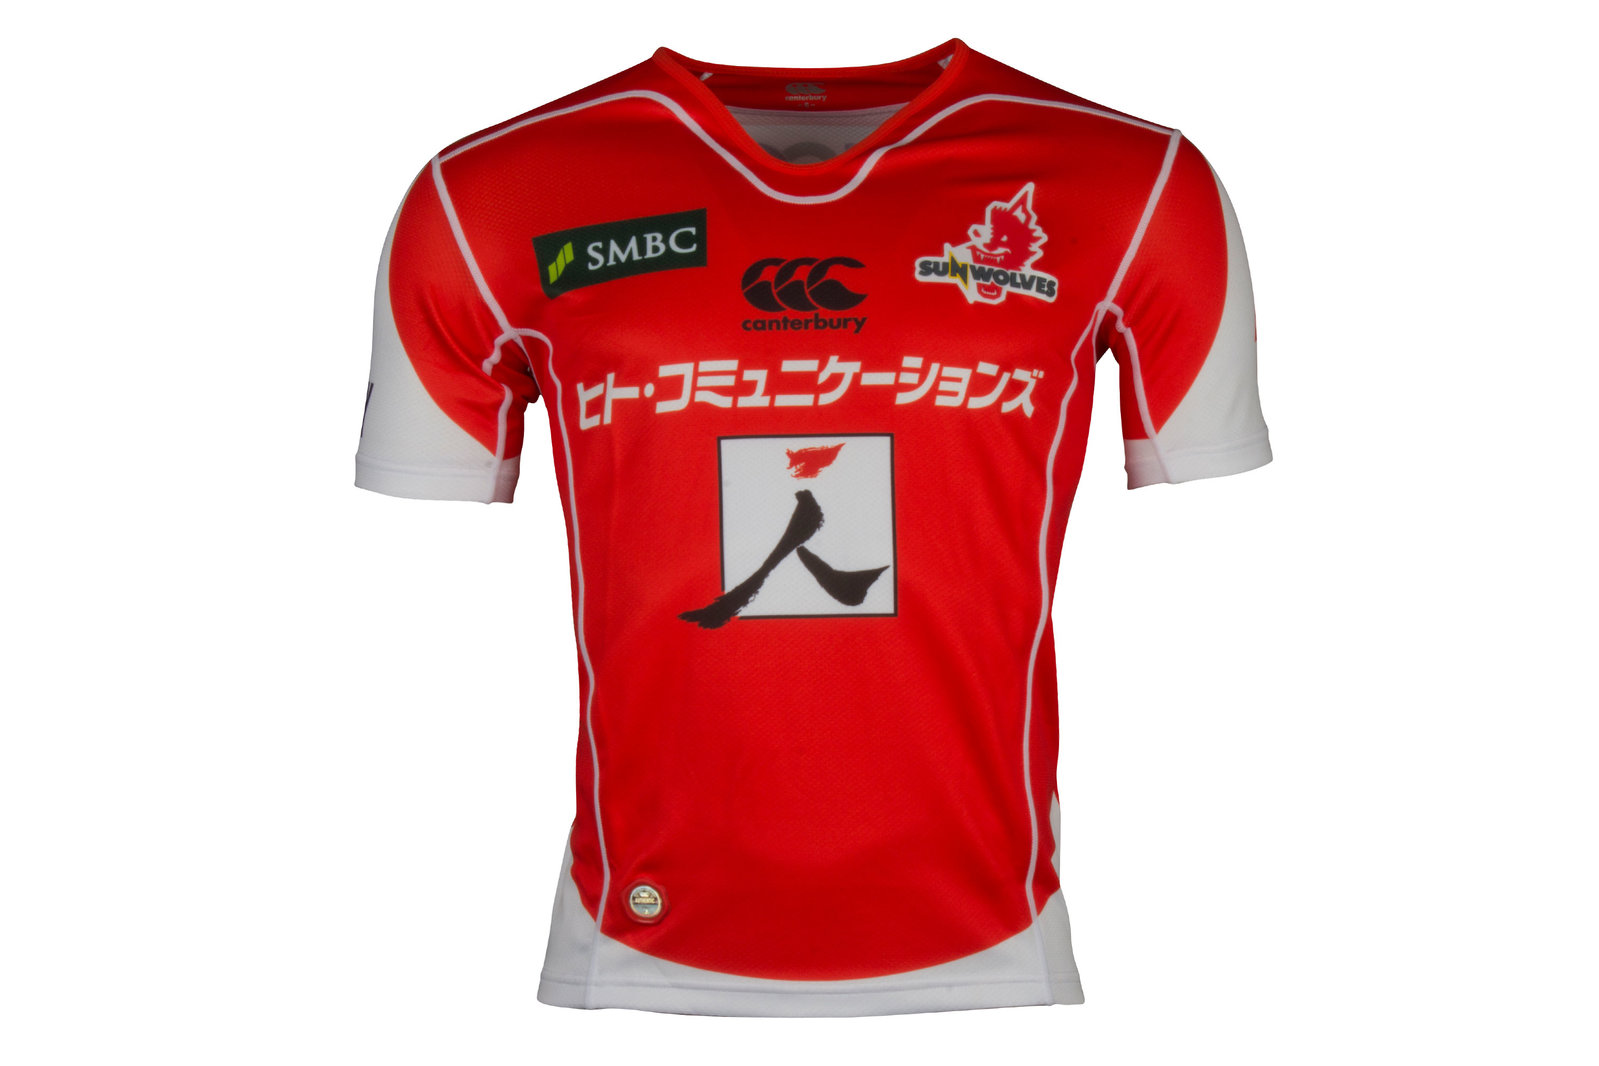 dab3f9a503c Canterbury Mens Sunwolves 2017 Home Super Rugby S/S Shirt Top Training